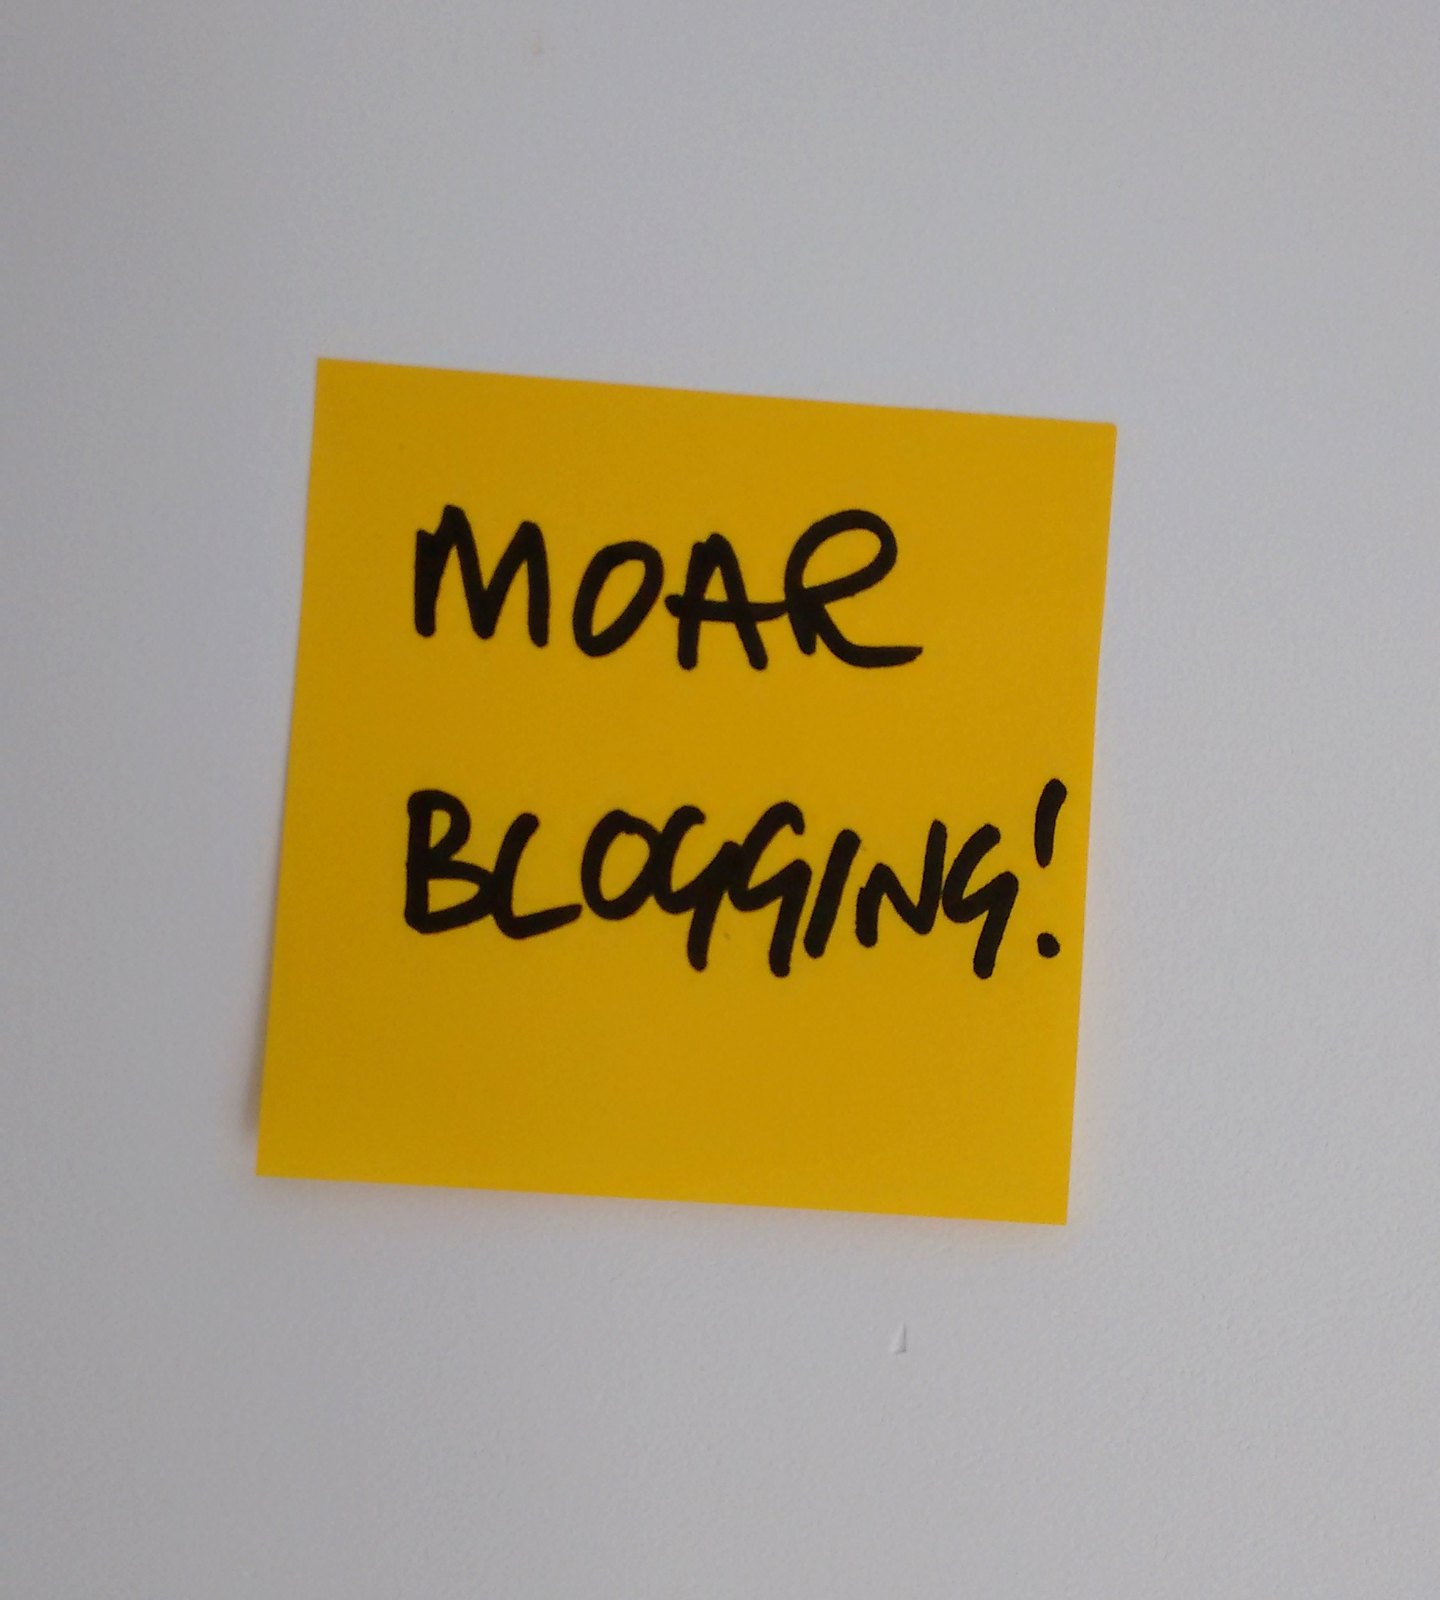 MOAR BLOGGING!